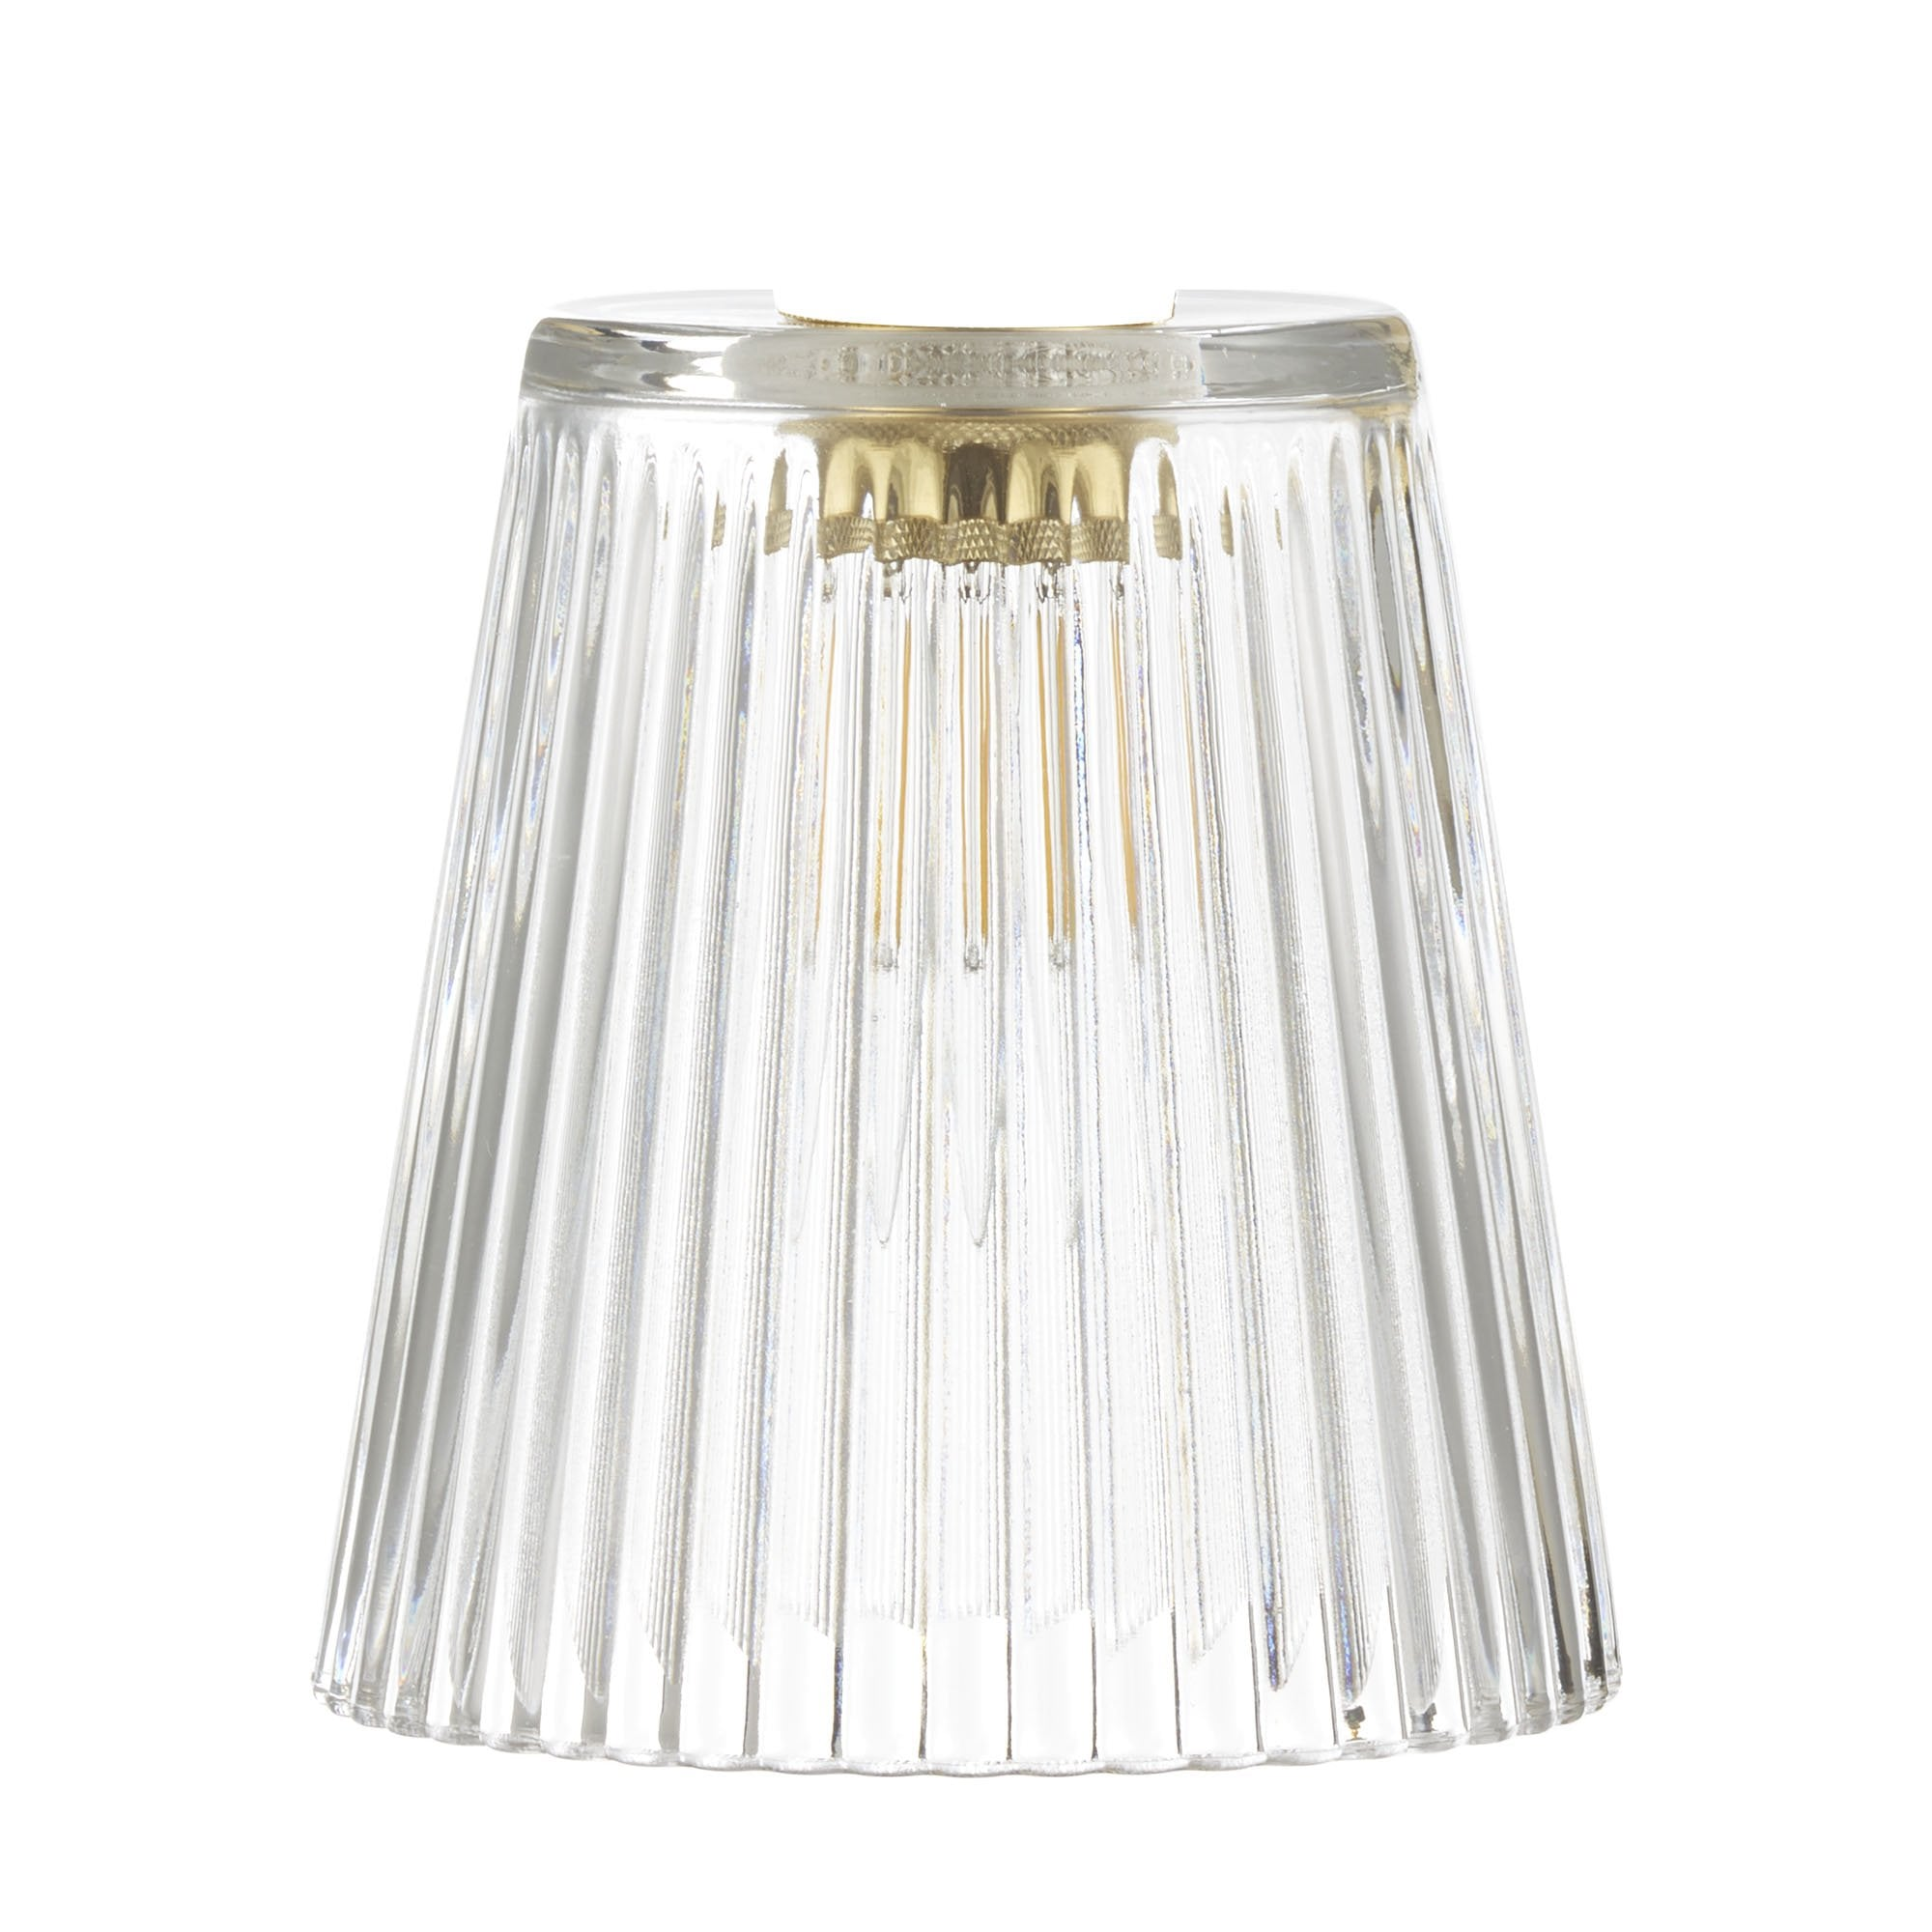 Accessory Clear Ribbed Glass Shade Lighting Company Uk